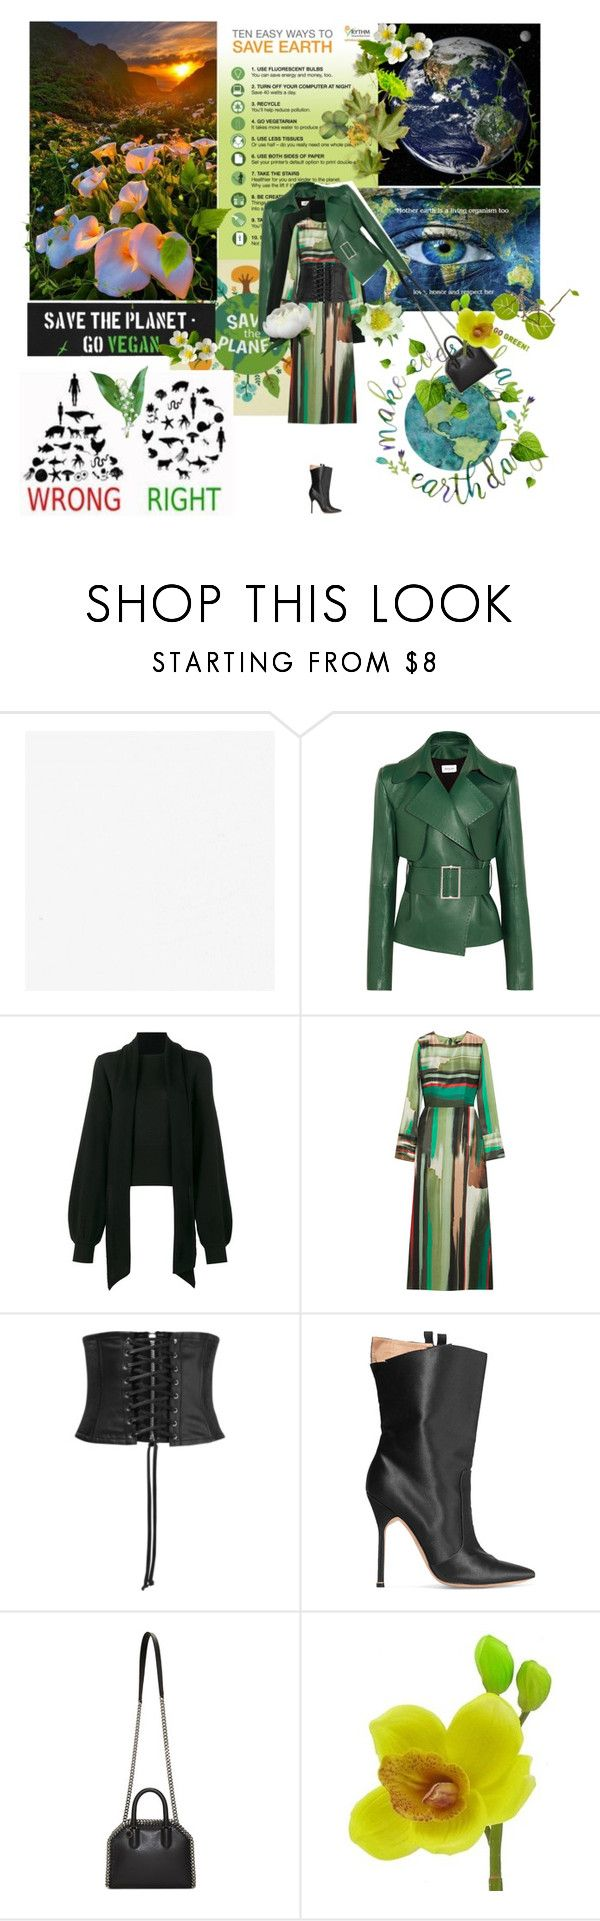 """""""keep it green"""" by la-rosy ❤ liked on Polyvore featuring Energie, Thierry Mugler, Chloé, Goen.J, McQ by Alexander McQueen, Vetements, Lily Valley, STELLA McCARTNEY, GREEN and earthday"""